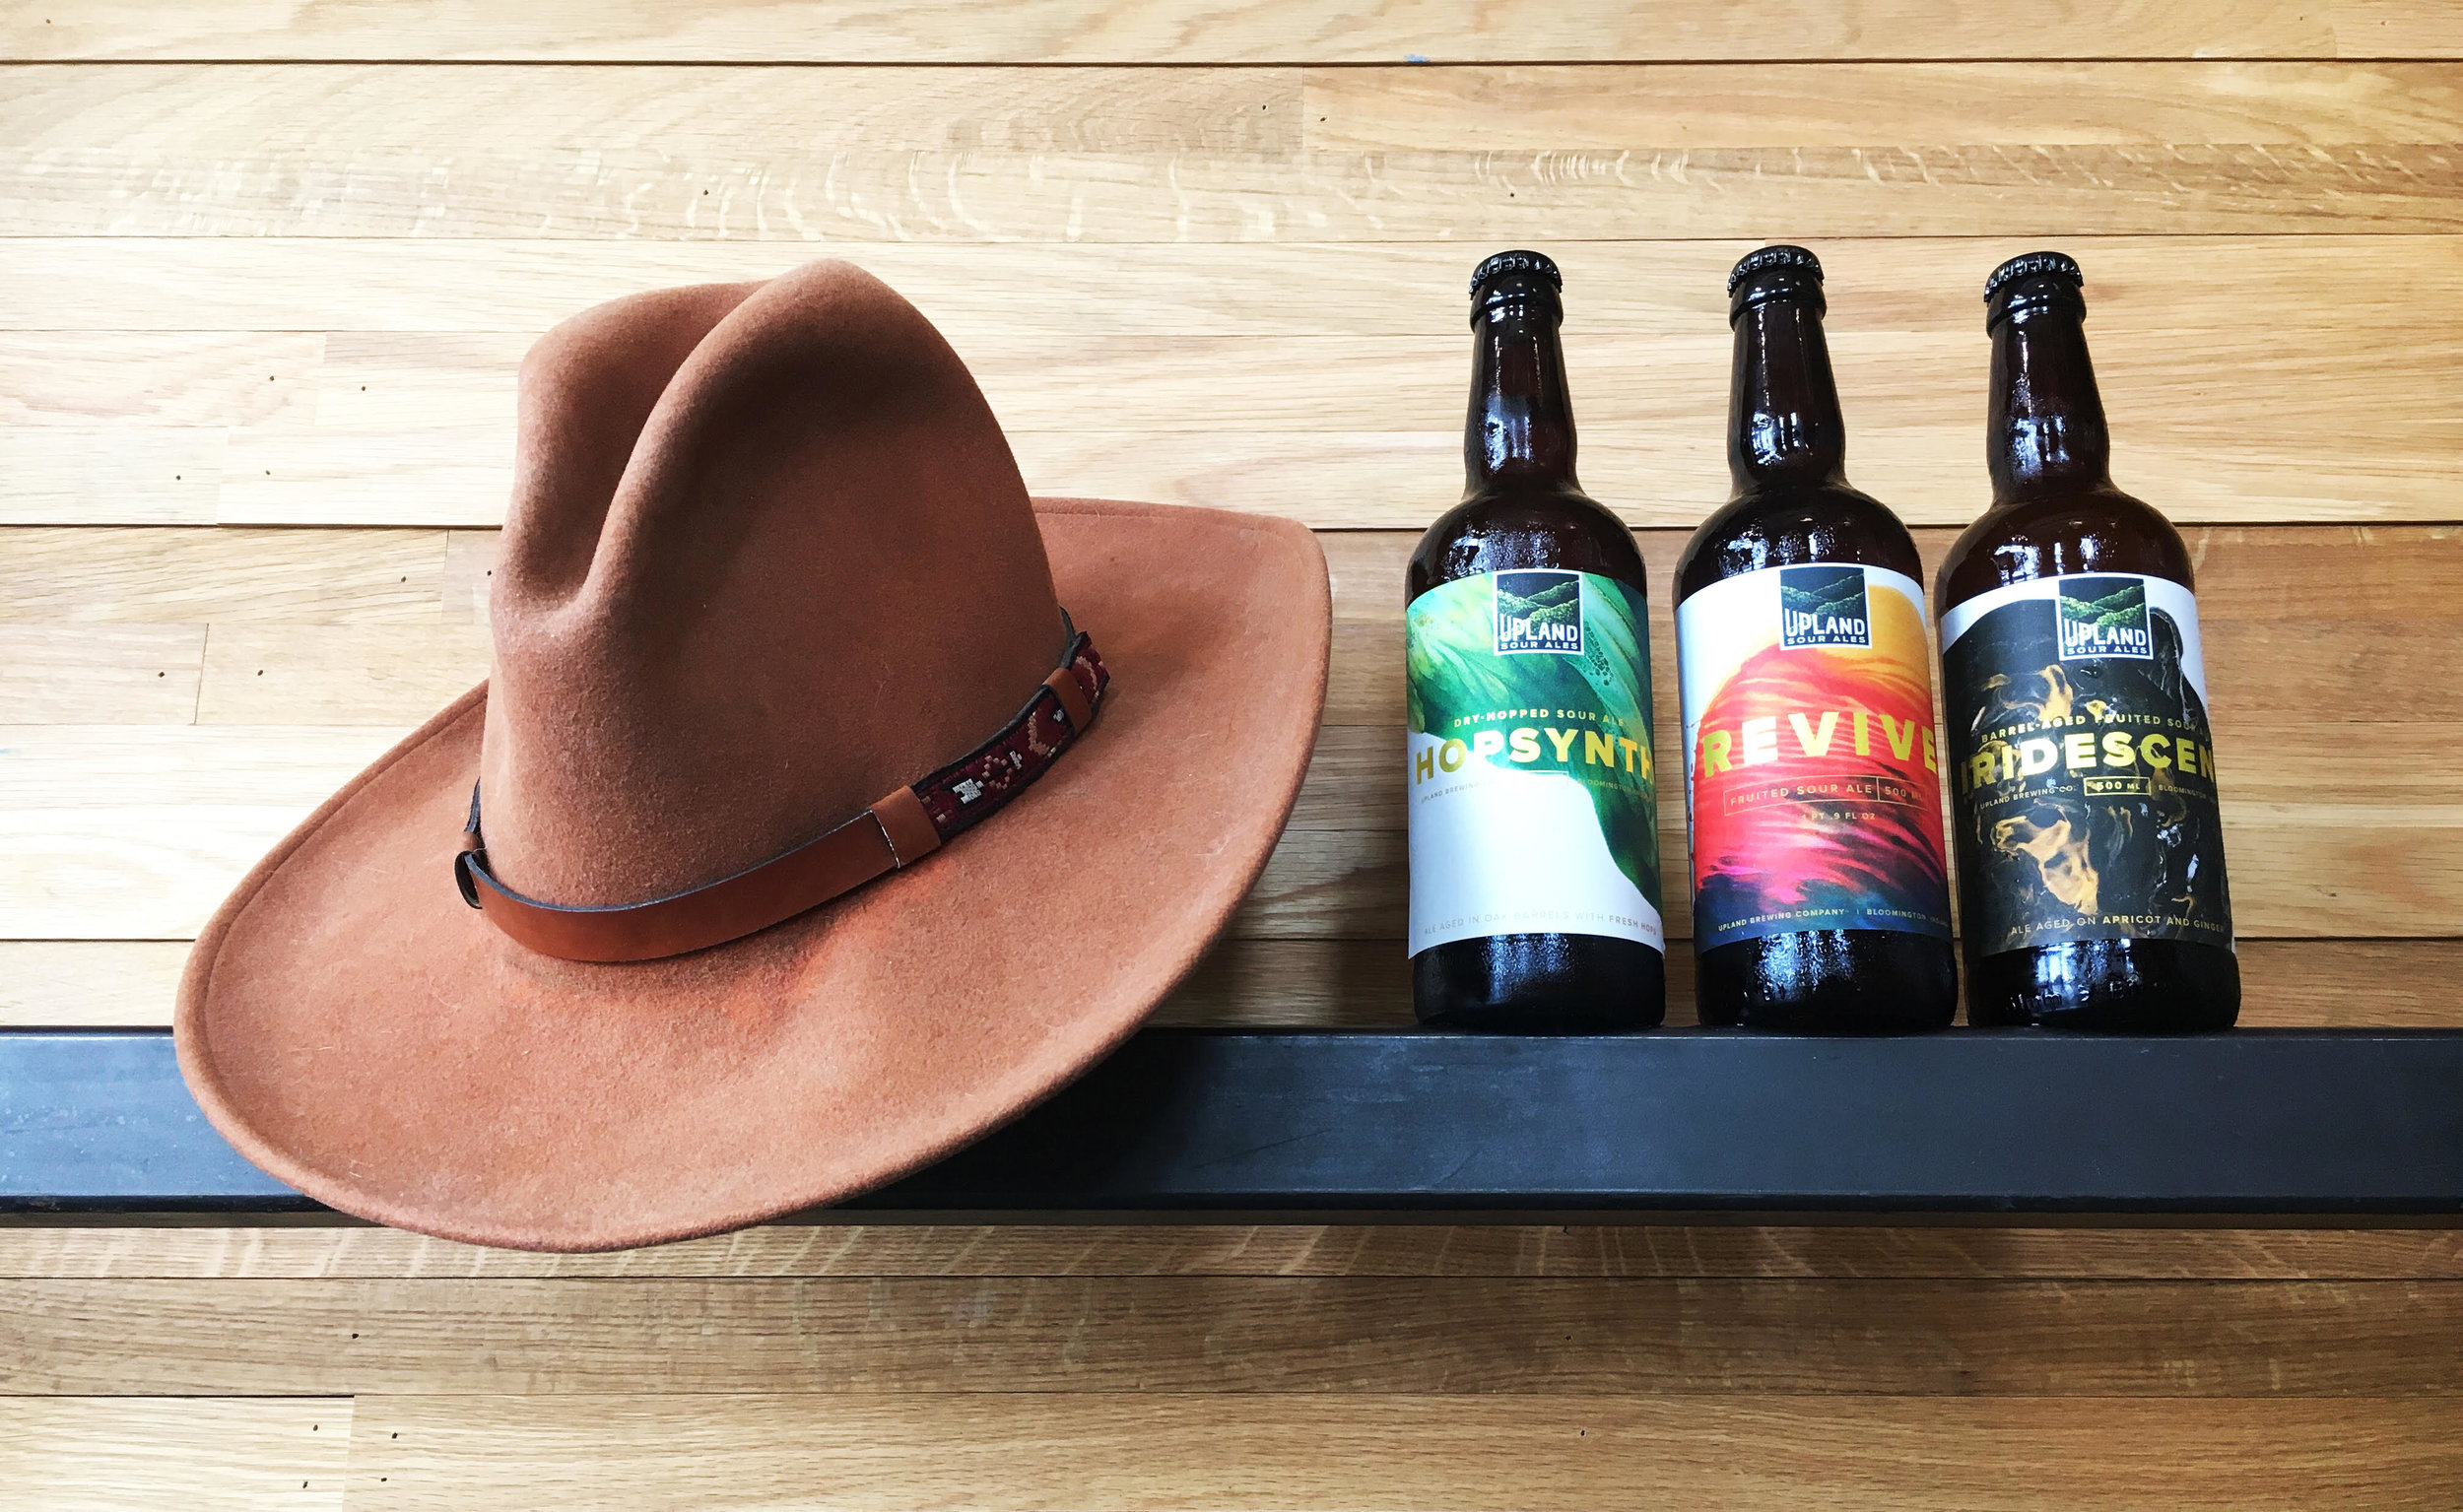 Upland Brewing Company reveals its line of sours: Hopsynth, Cherry and Iridescent. Photo courtesy of Upland Brewing Company.